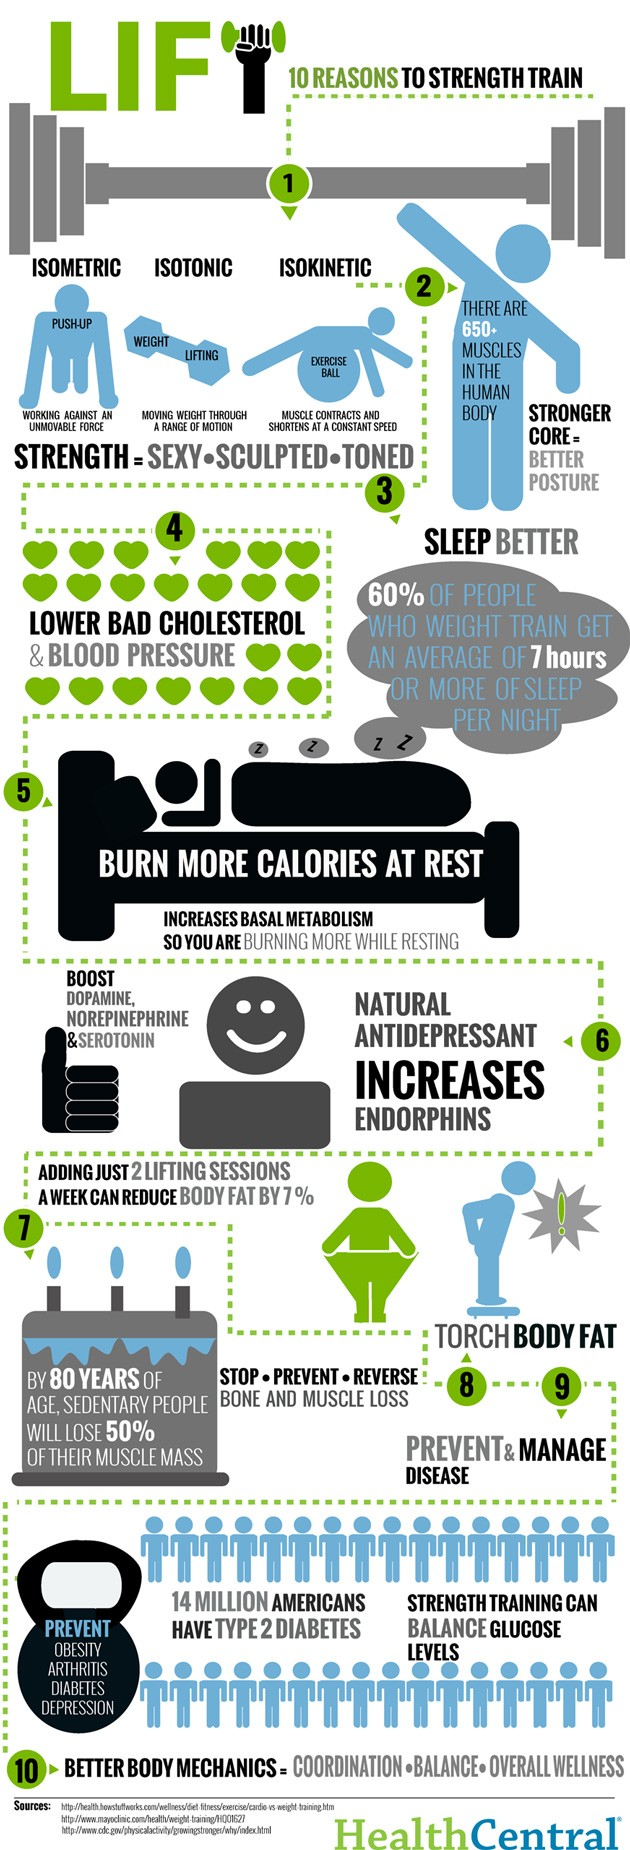 10 Reasons To Strength Train Infographic